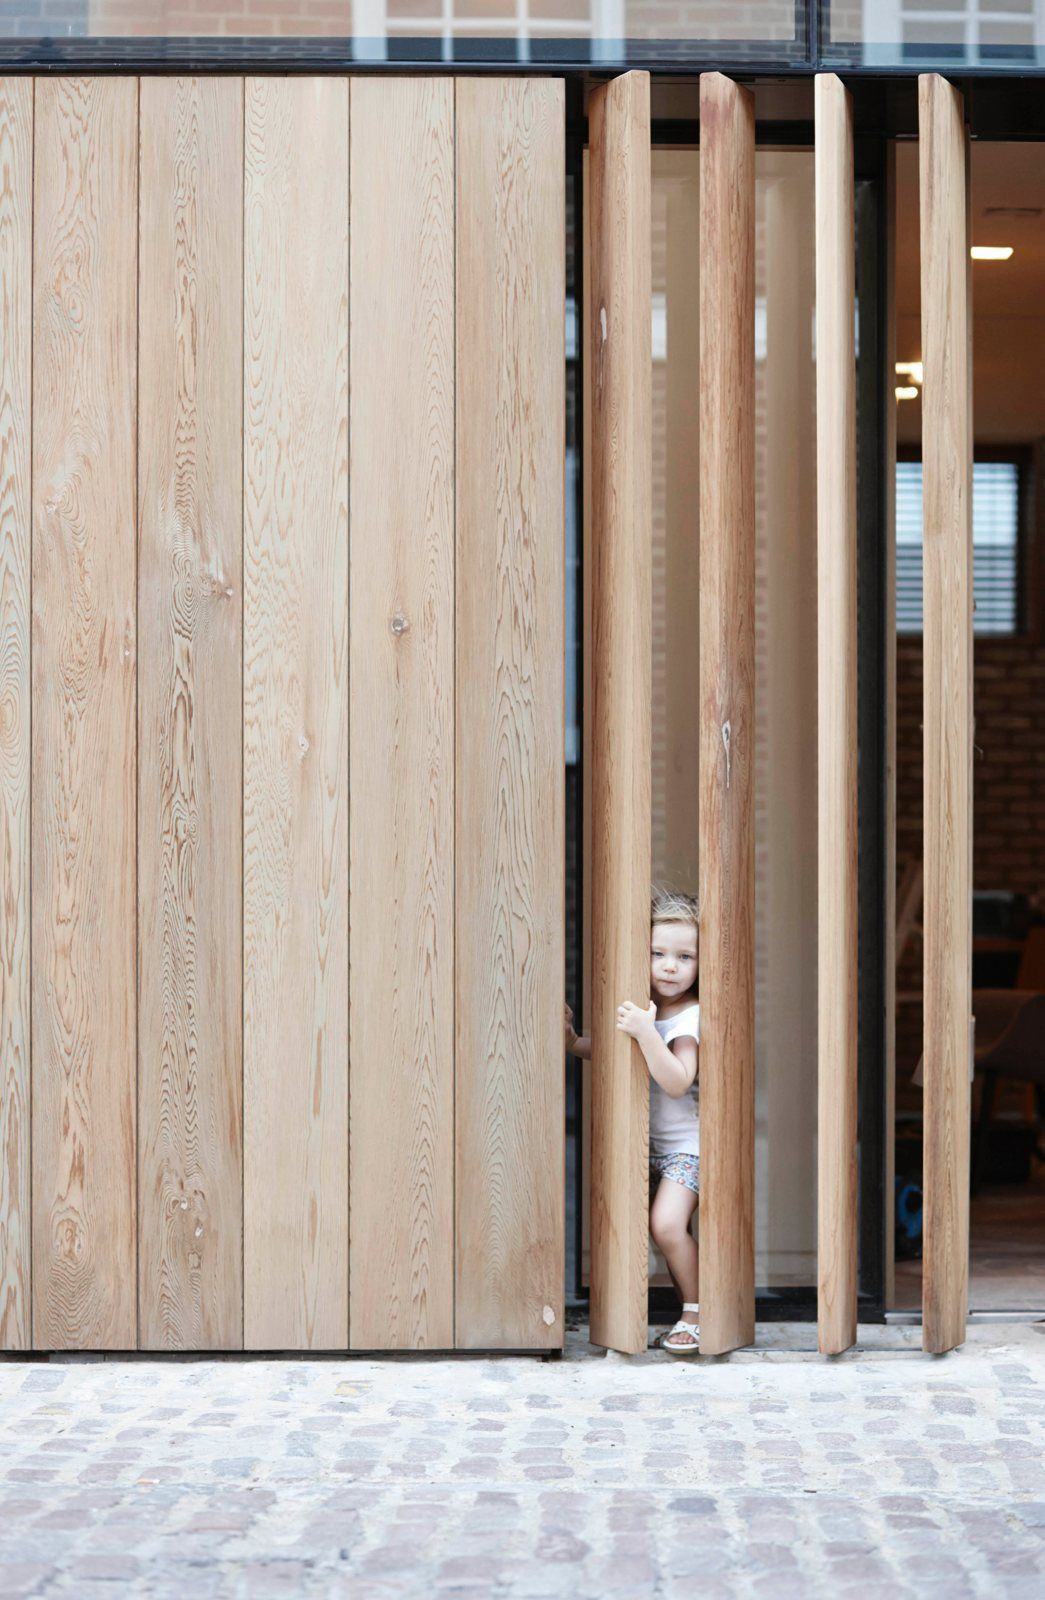 Movable Wooden Partition Wooden Pivot Screens London Mew 39s Development By D Raw